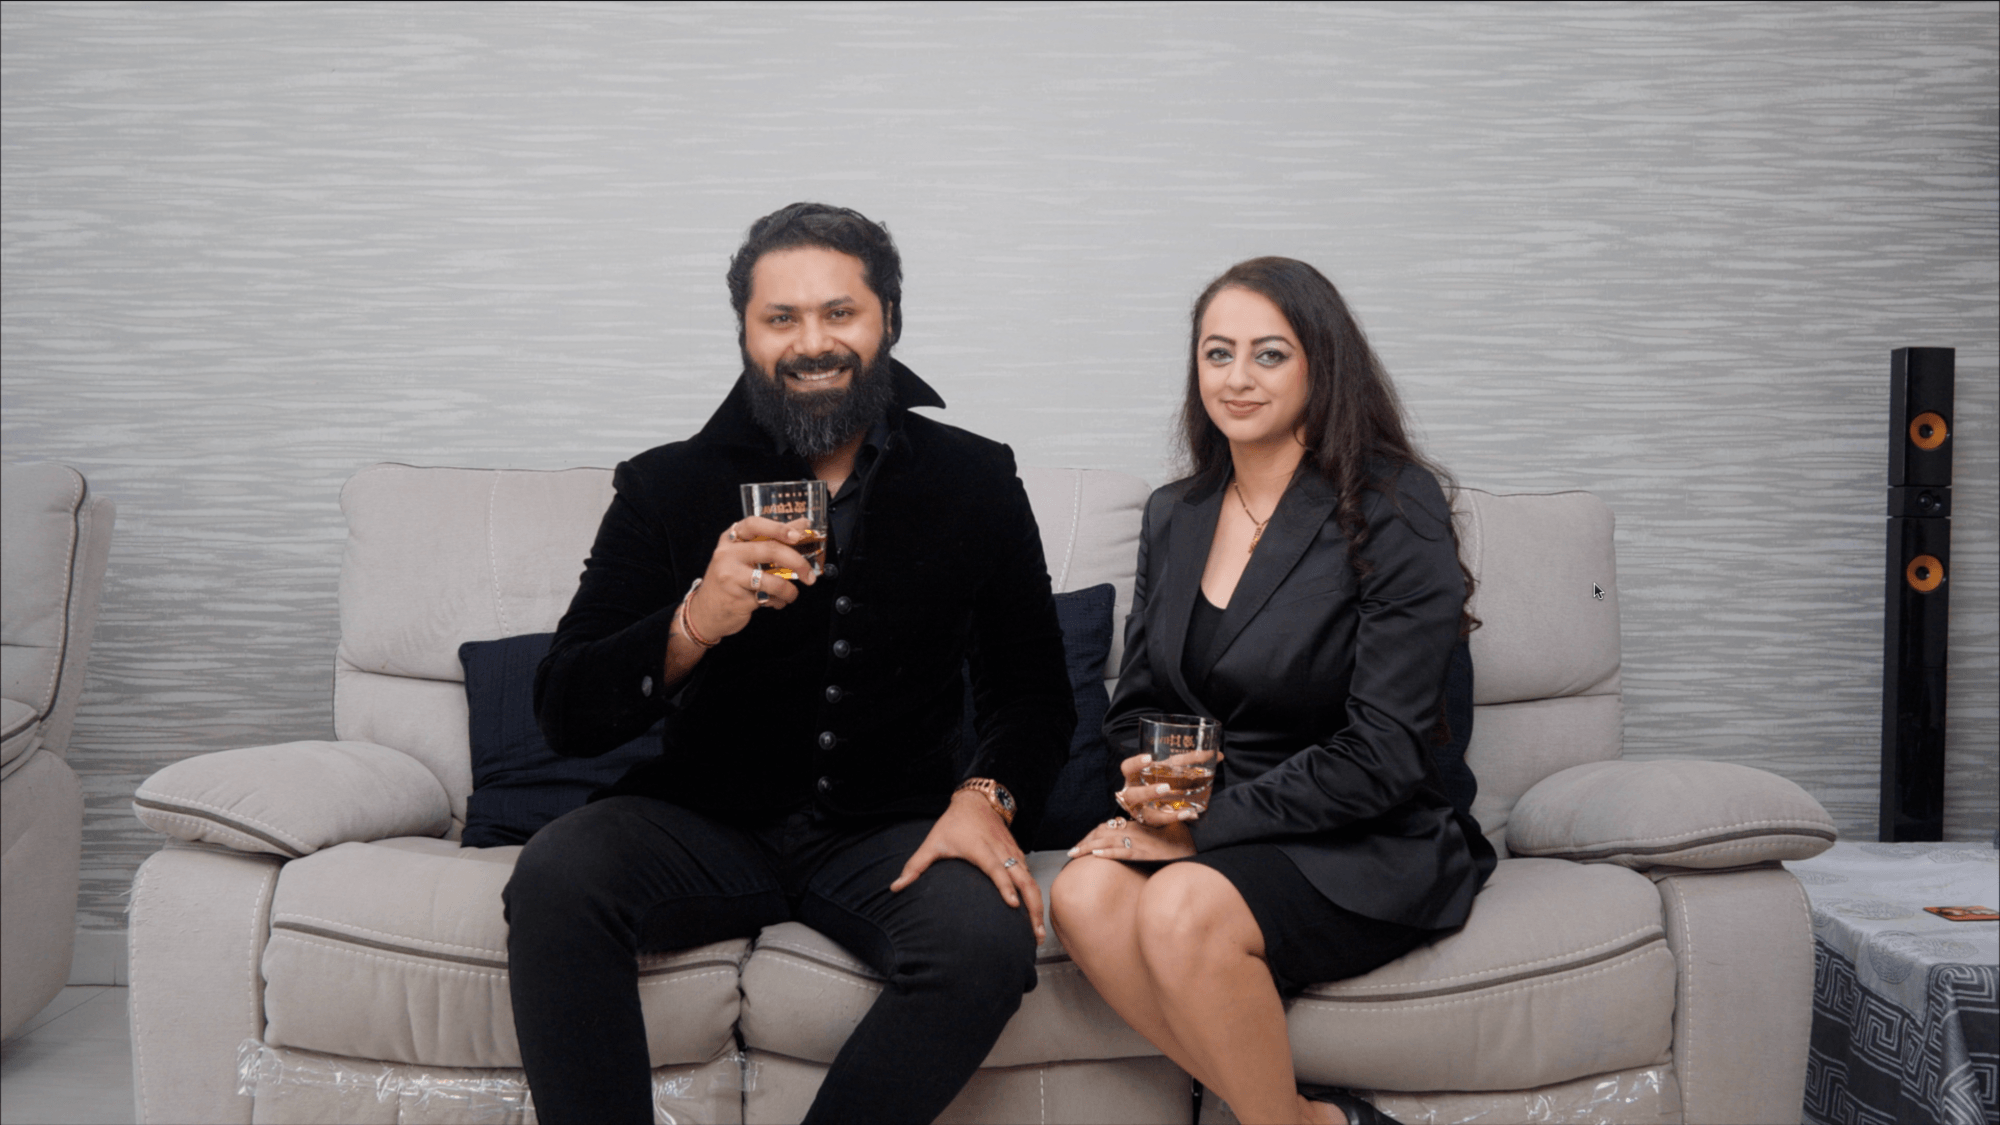 AABHISHEET: PARTNERS, WHISKY DRINKERS, MUSIC, LOVE